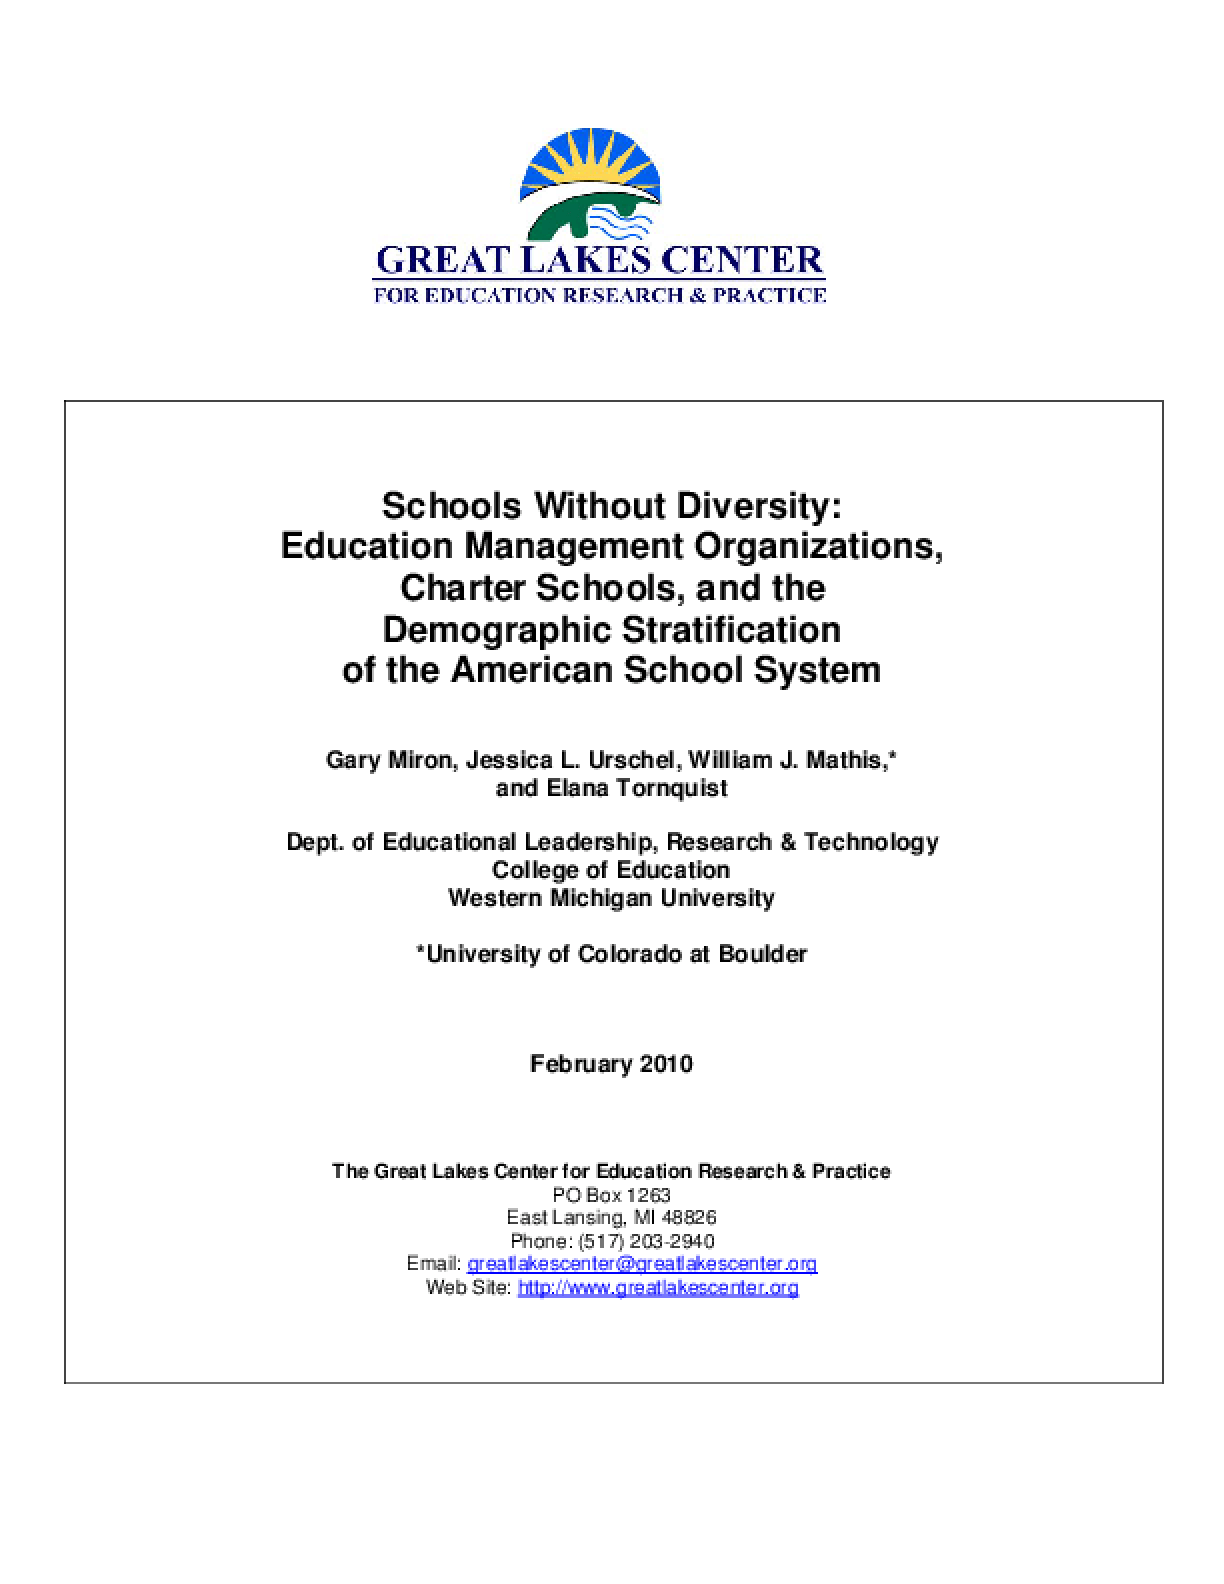 Schools Without Diversity: Education Management Organizations, Charter Schools, and the Demographic Stratification of the American School System